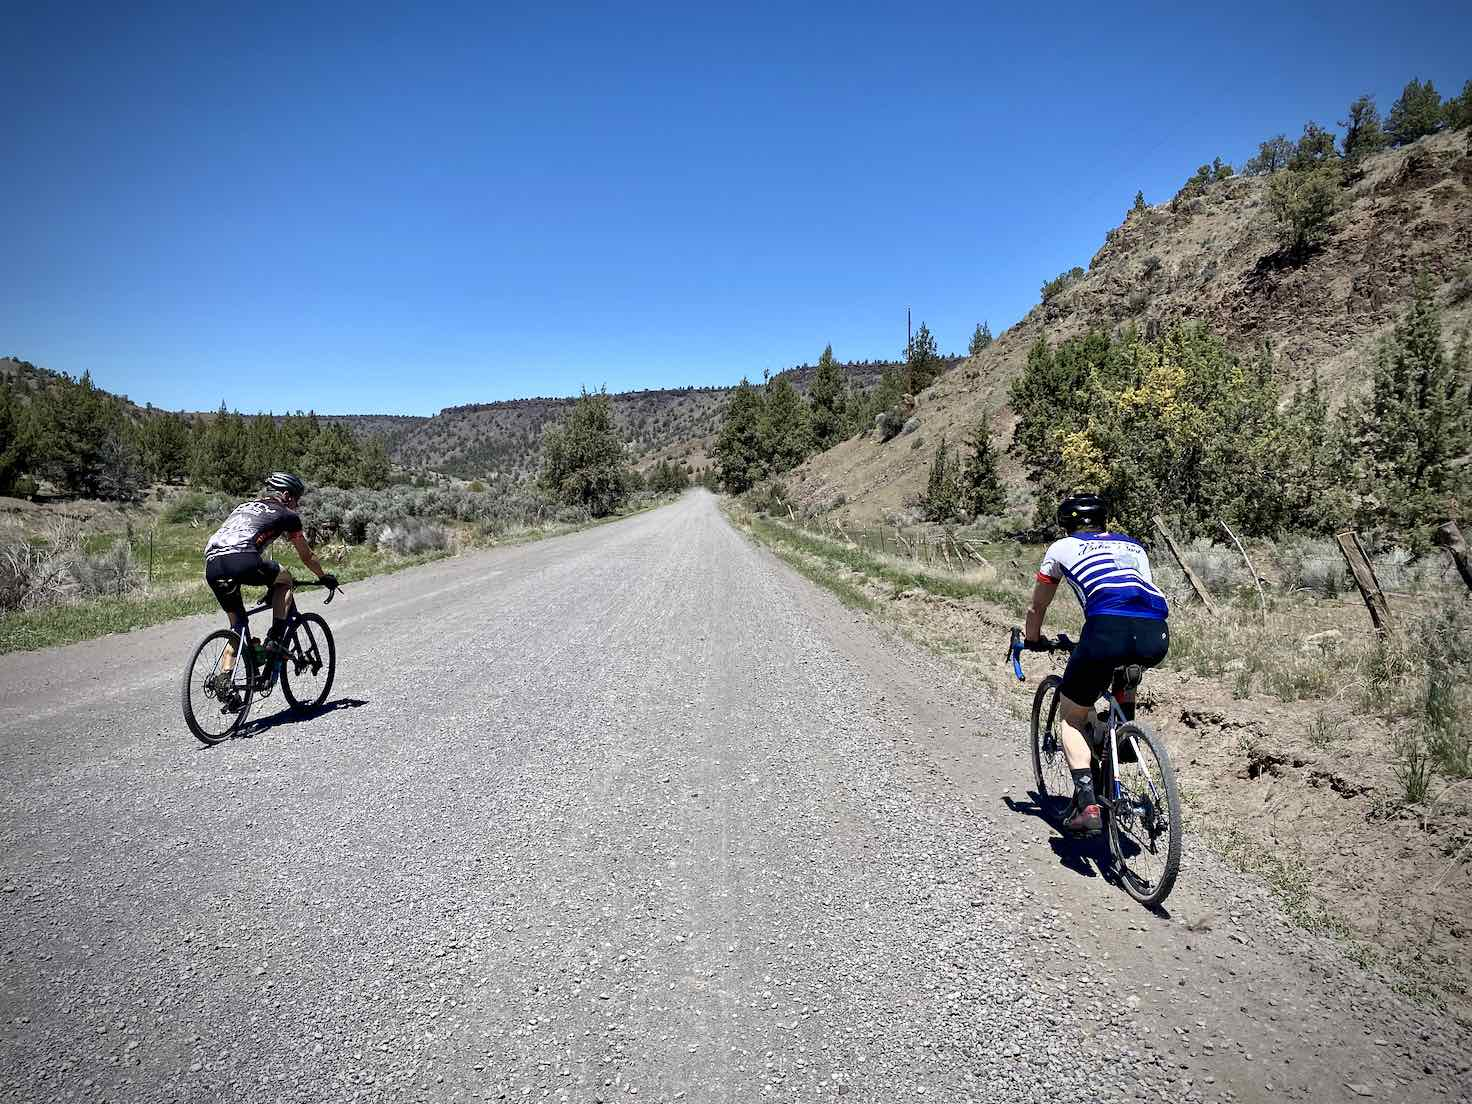 Two cyclists riding the gravel portion of the Crooked River Highway.